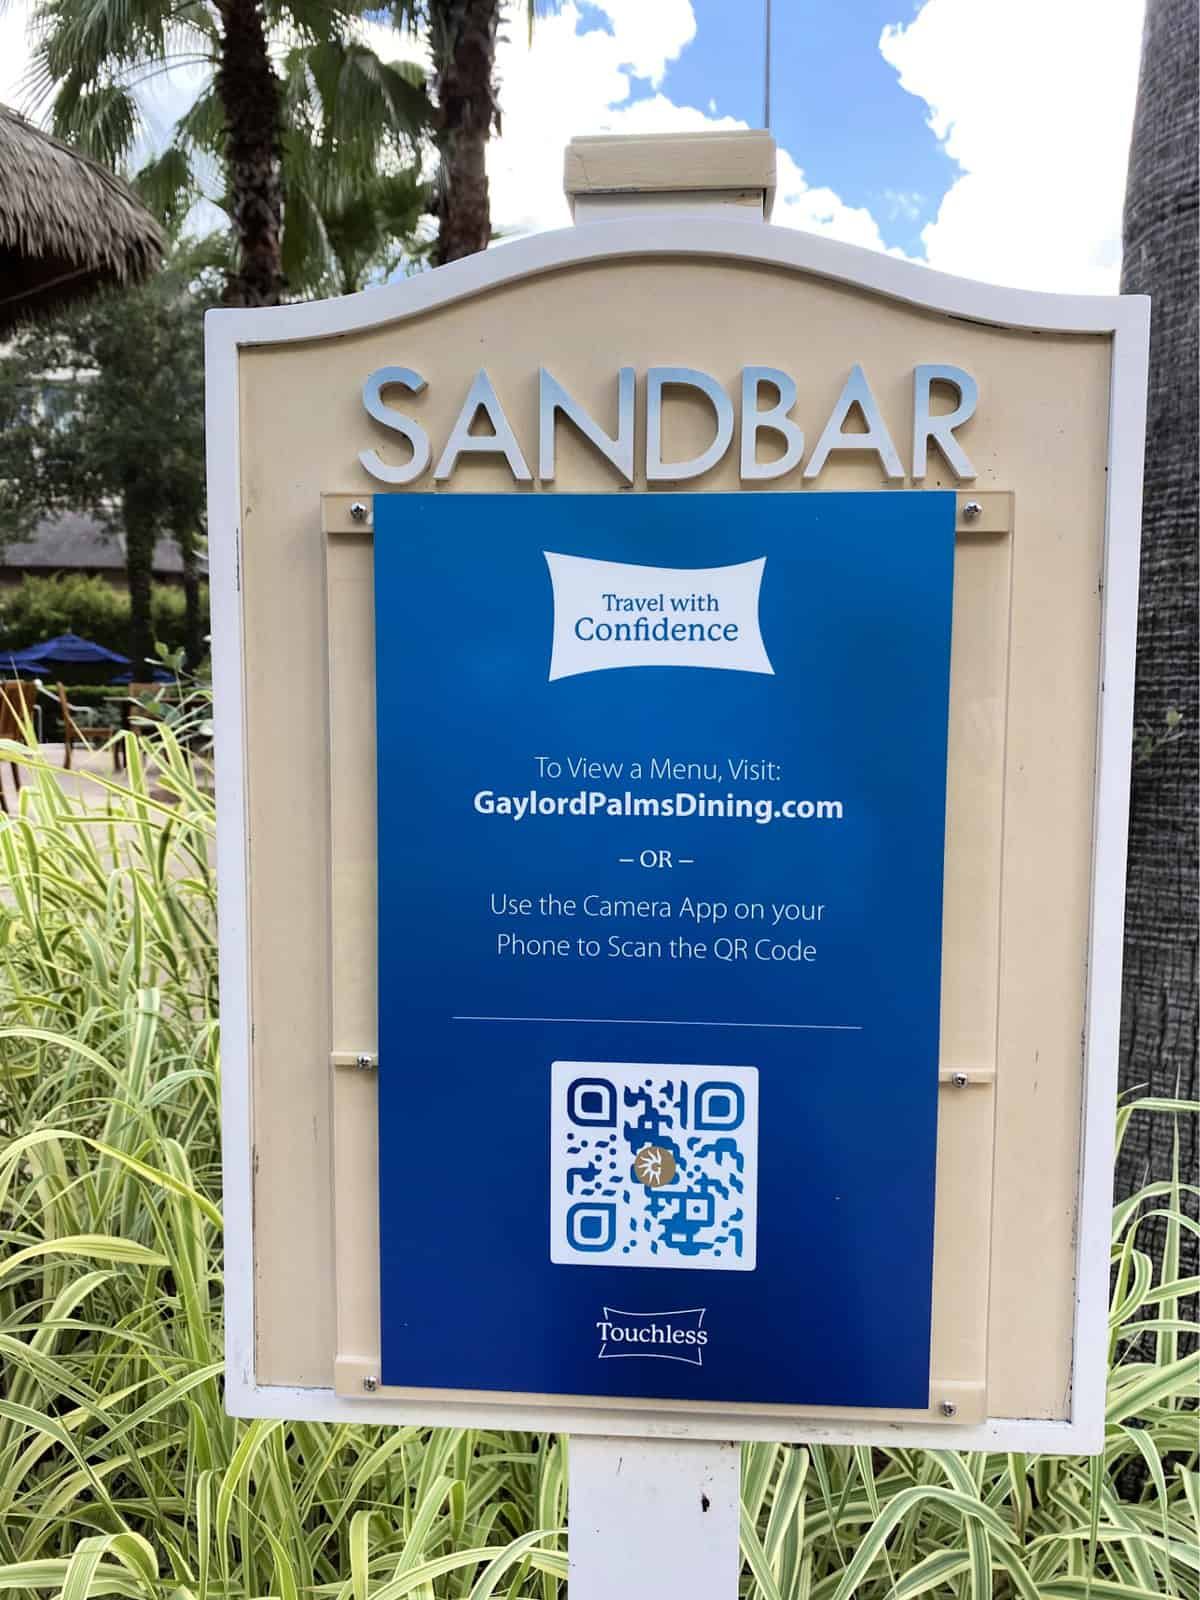 Sandbar travel with confidence sign that has a dining menu qr code.